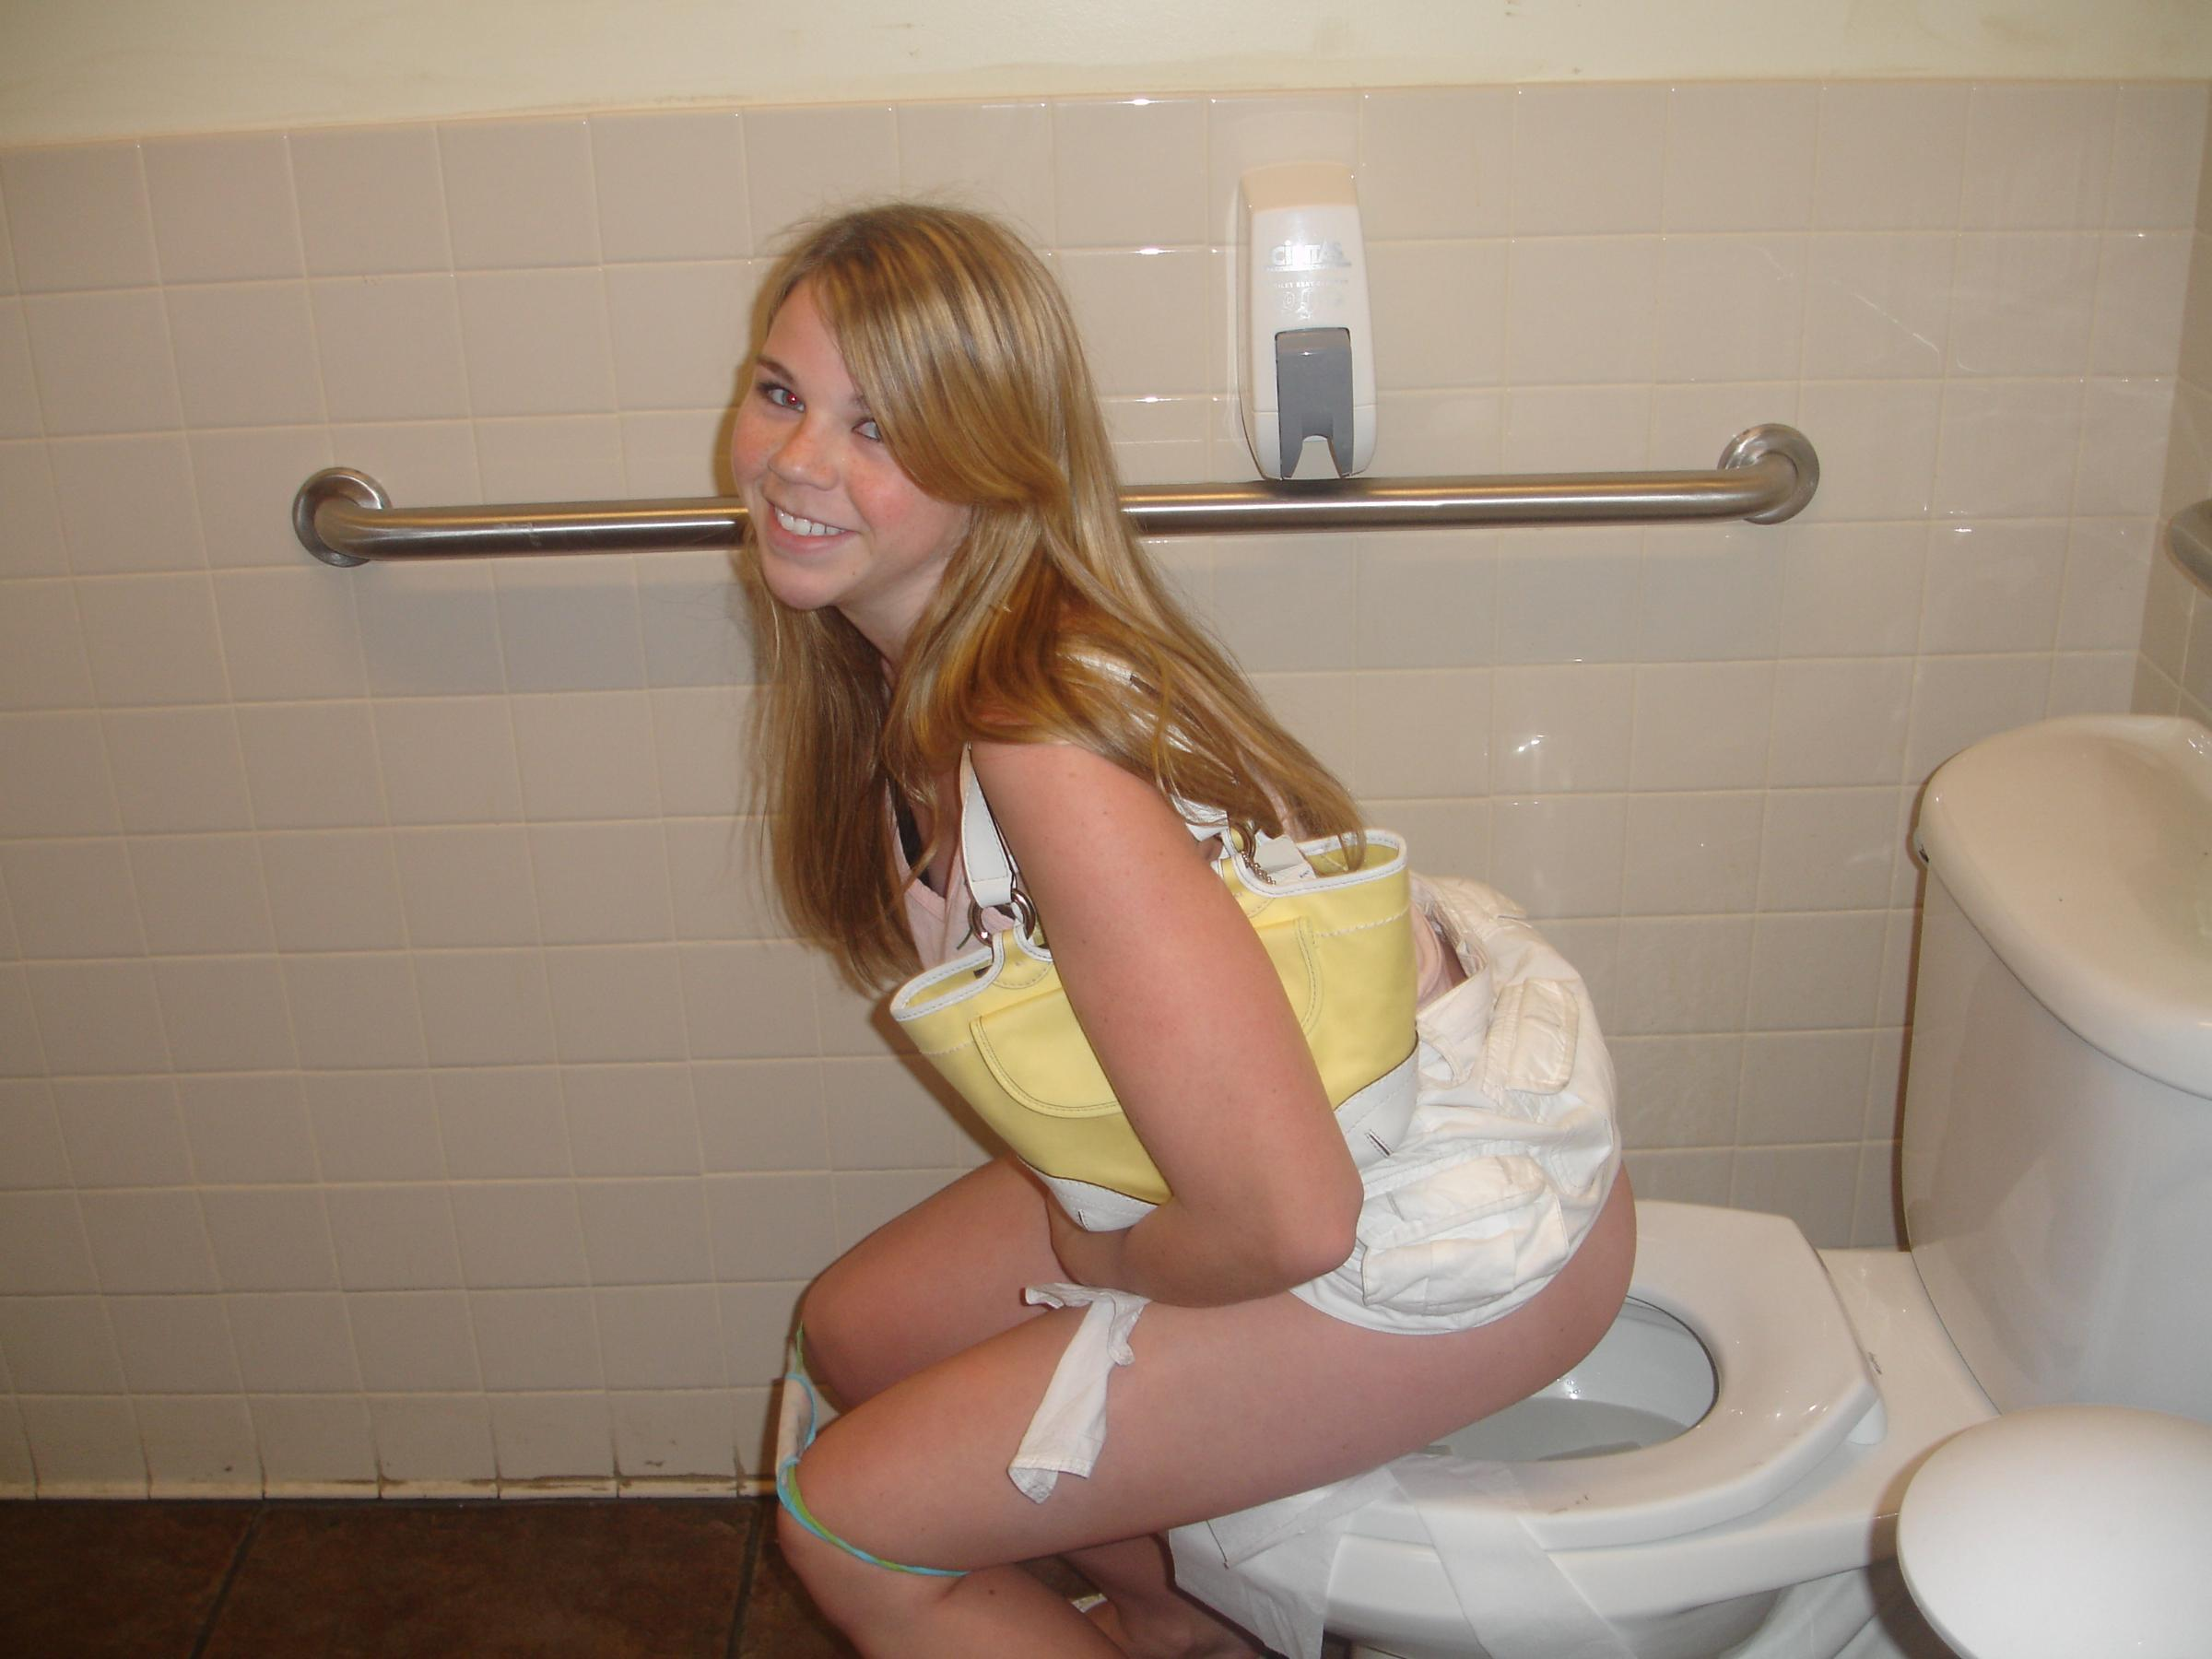 Toilet girl peeing in